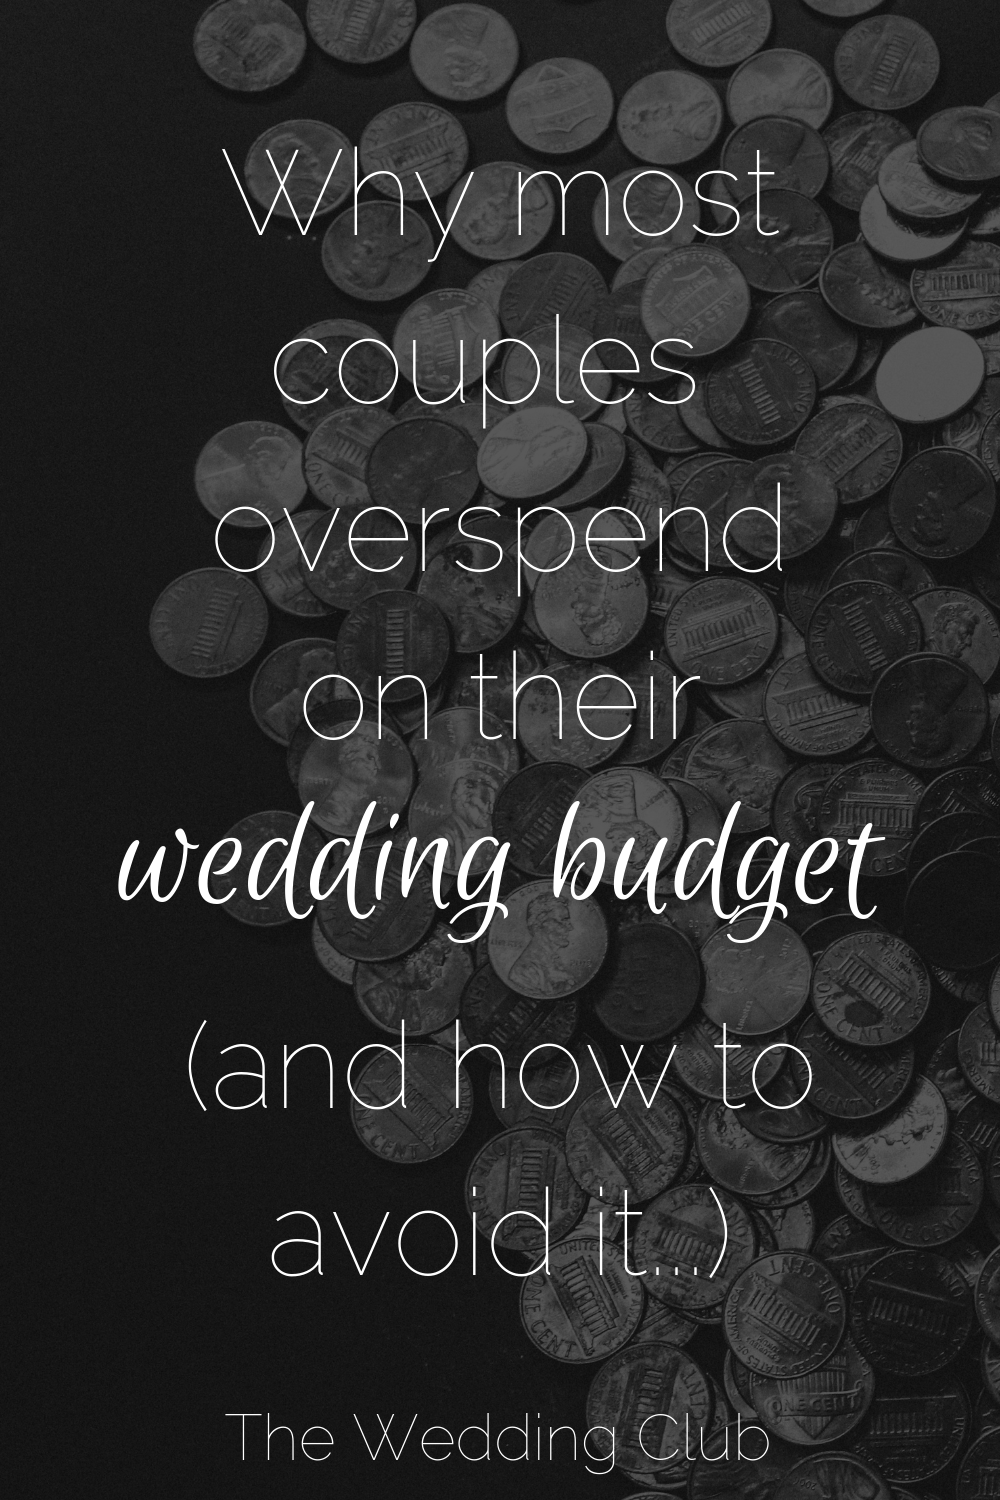 Why Most Couples Overspend on their Wedding Budget - and how to avoid it!